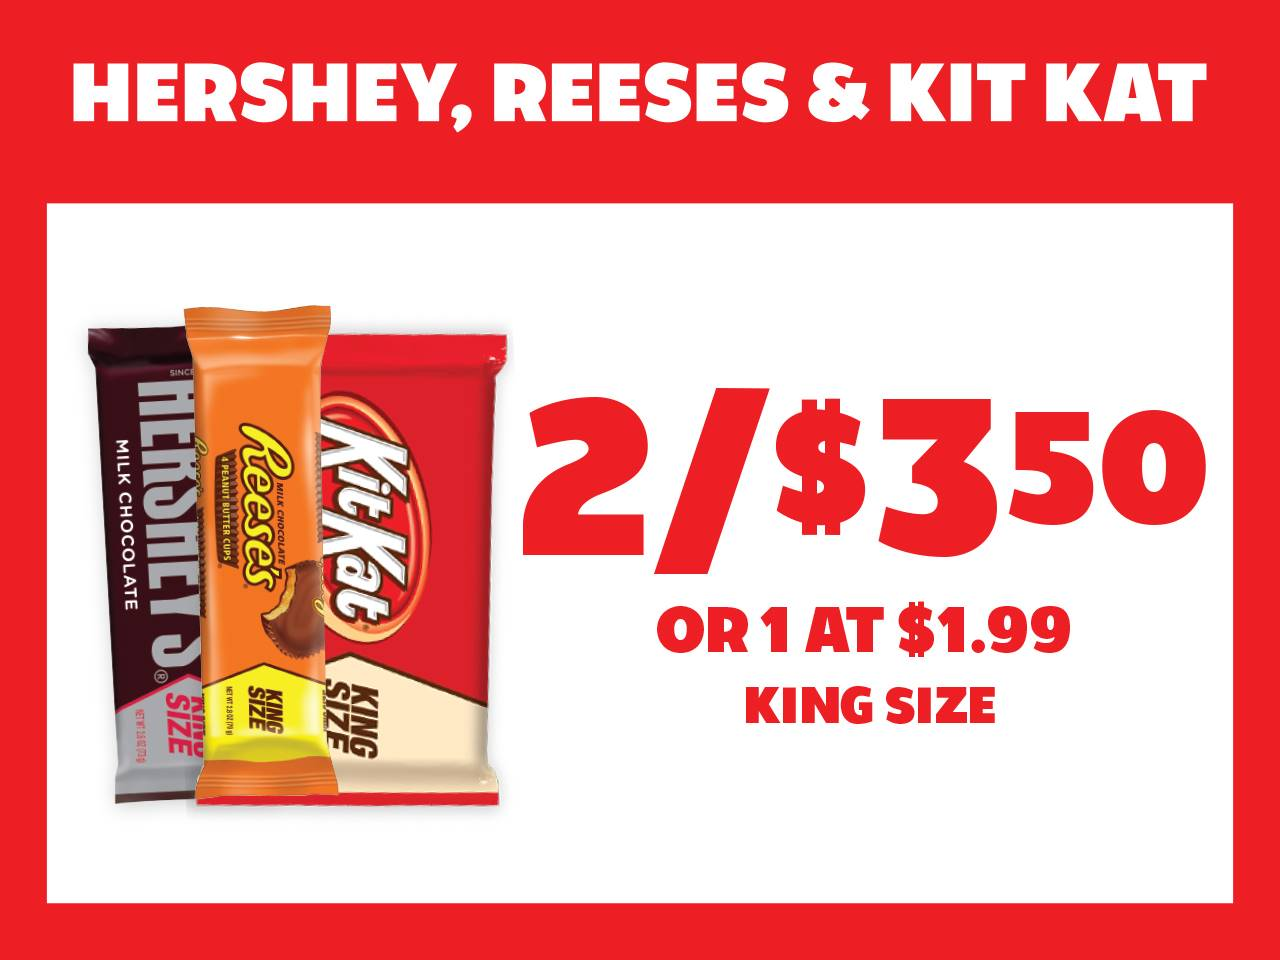 King Size Hershey, Reese's & Kit Kat 2 for $3.50 or 1 at $1.99